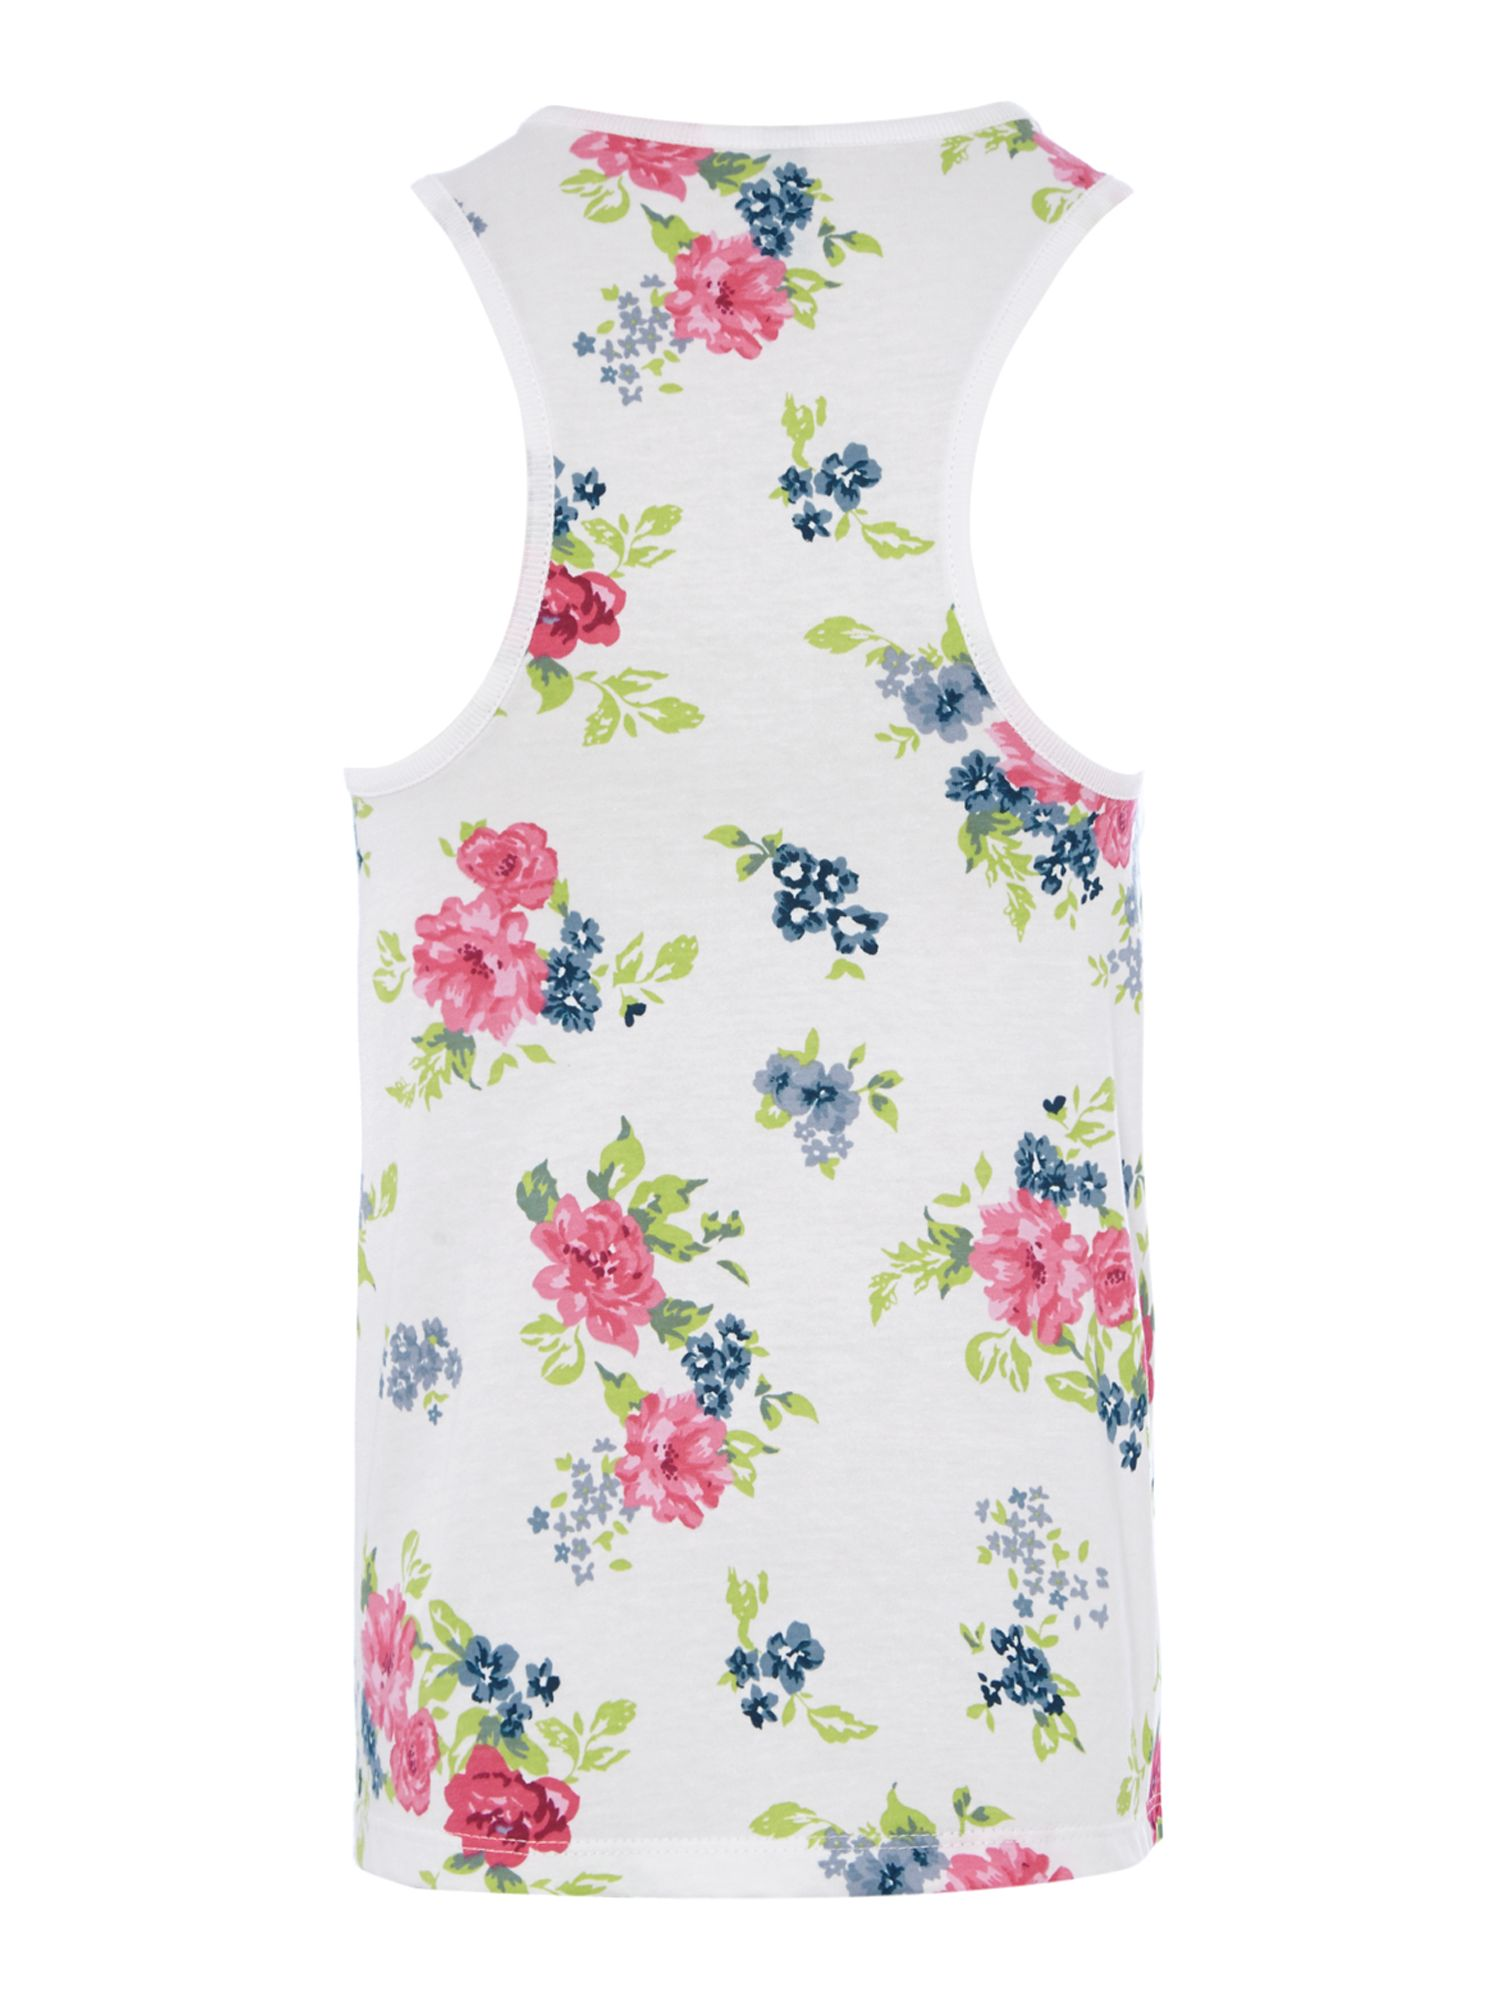 Girls floral bow vest